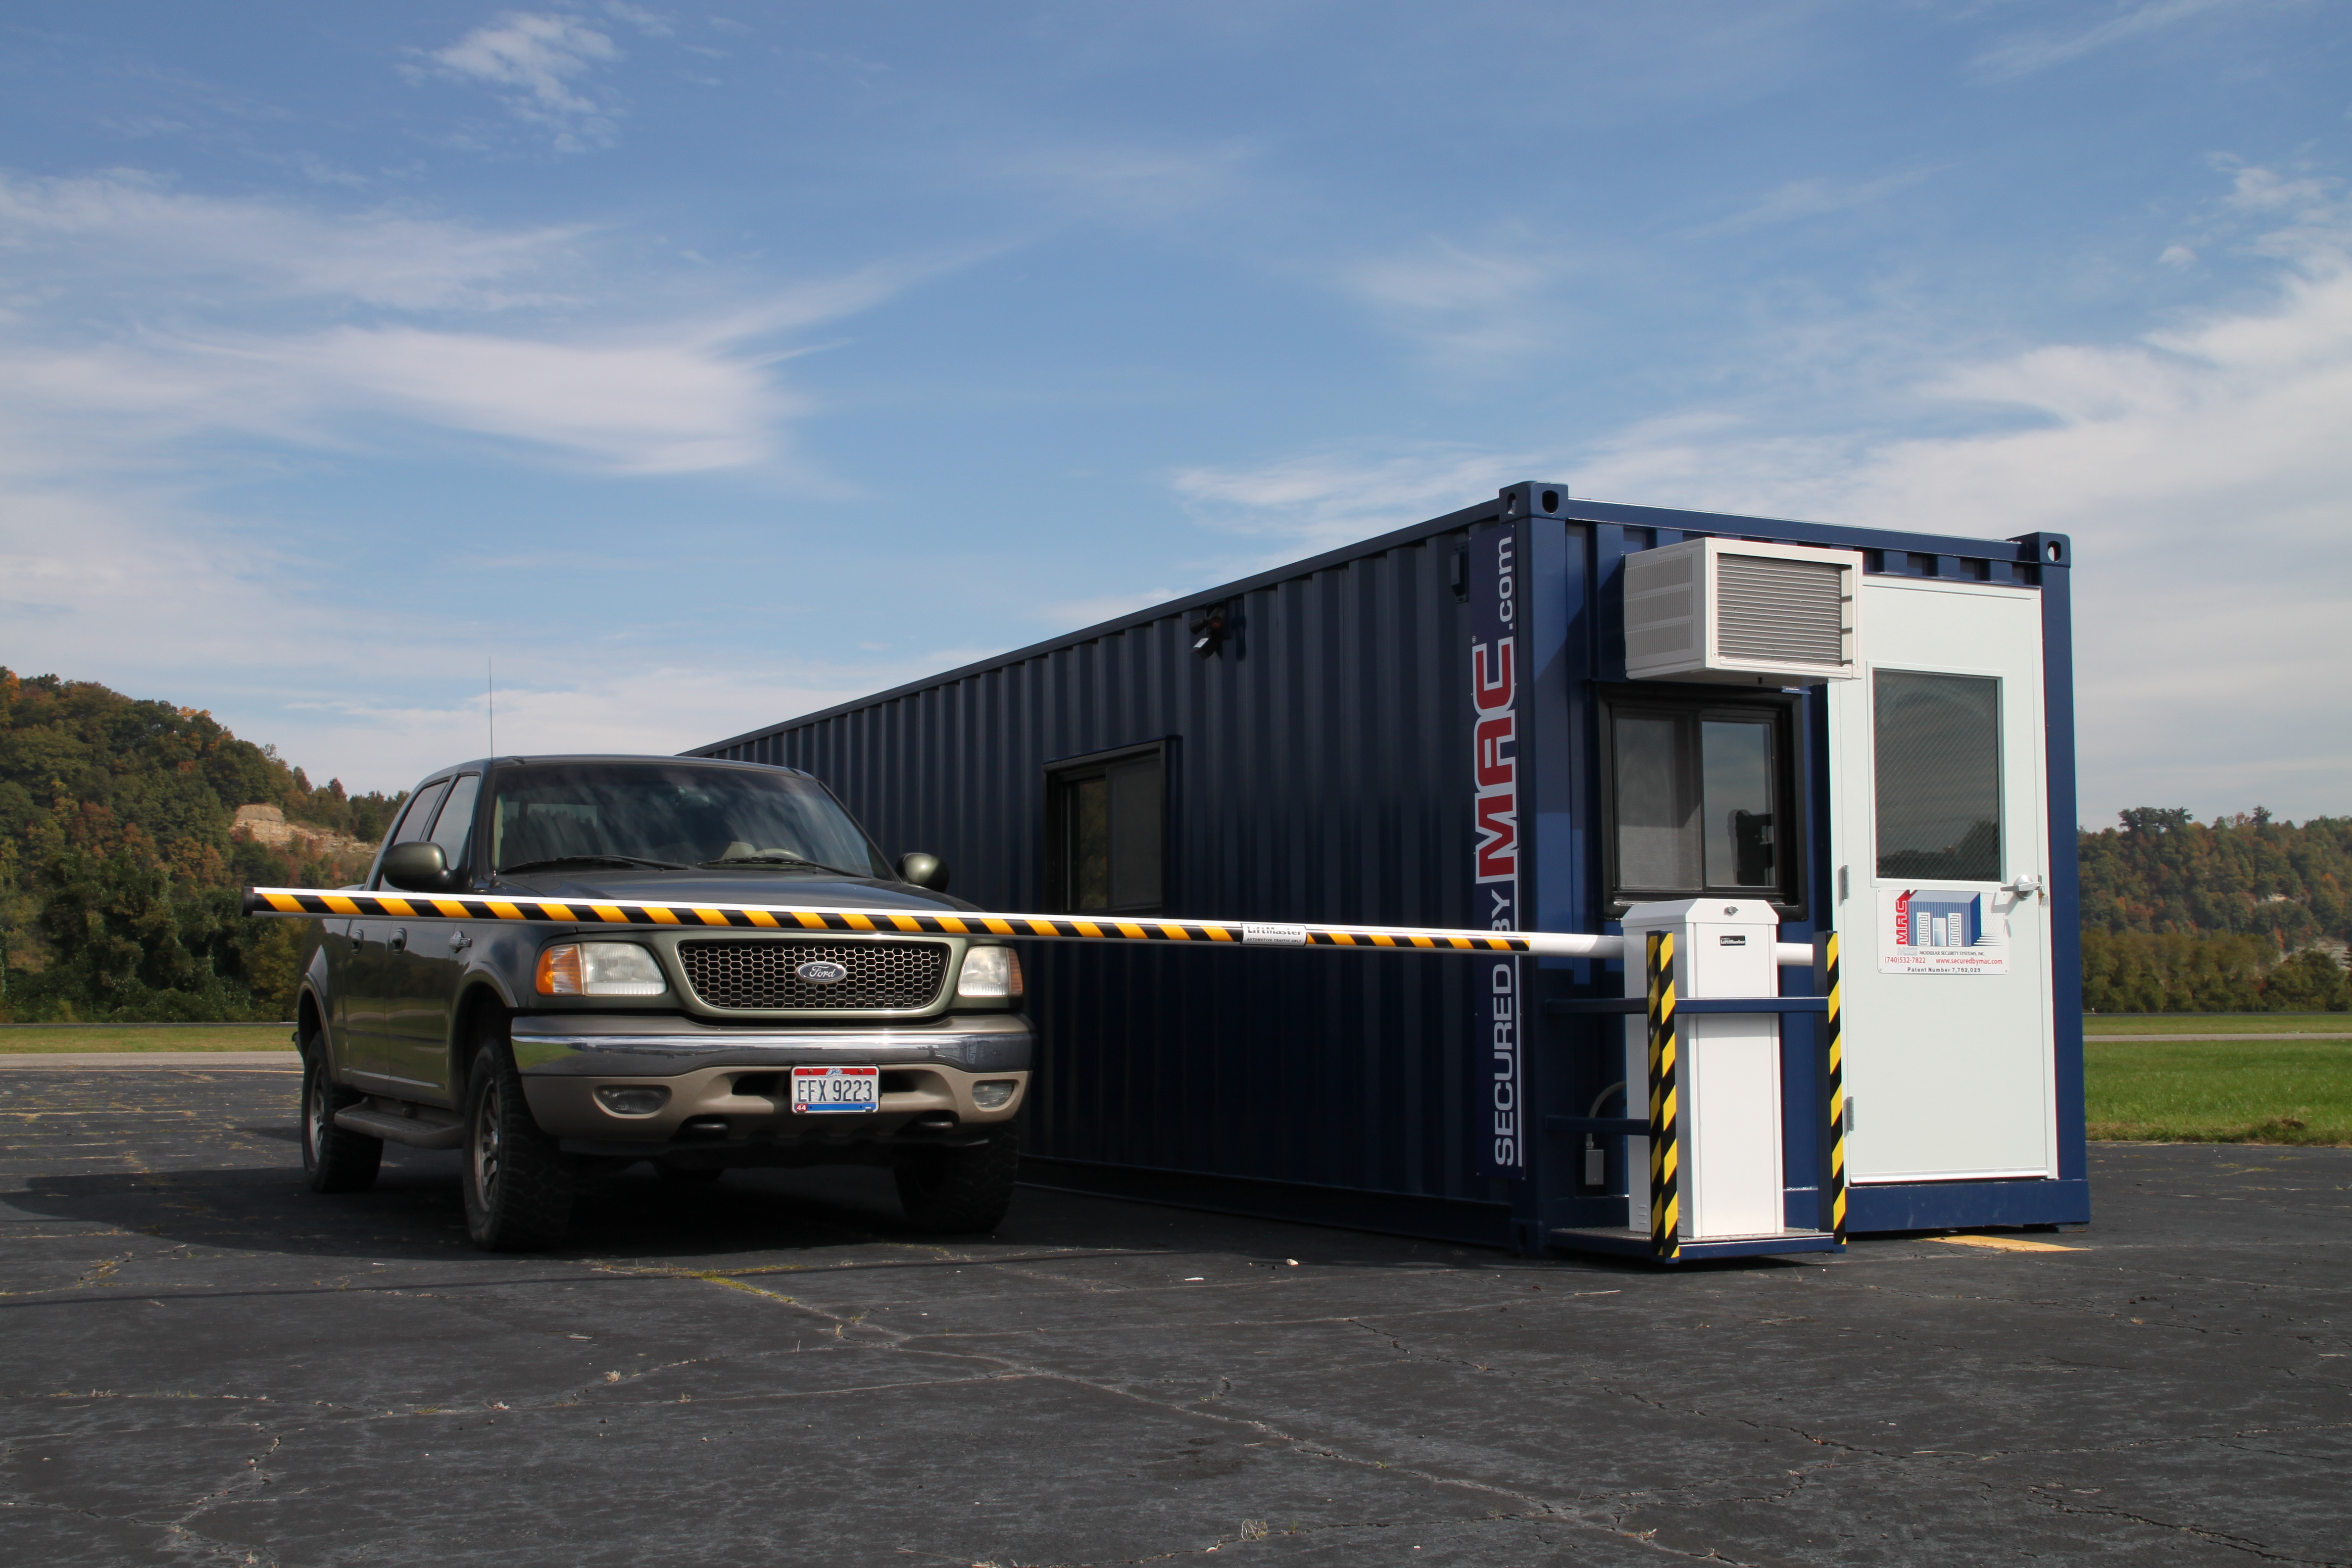 portable guard house with vehicle barrier arms, modular vehicle barrier arms with a guard house, guard office with vehicle barrier arms